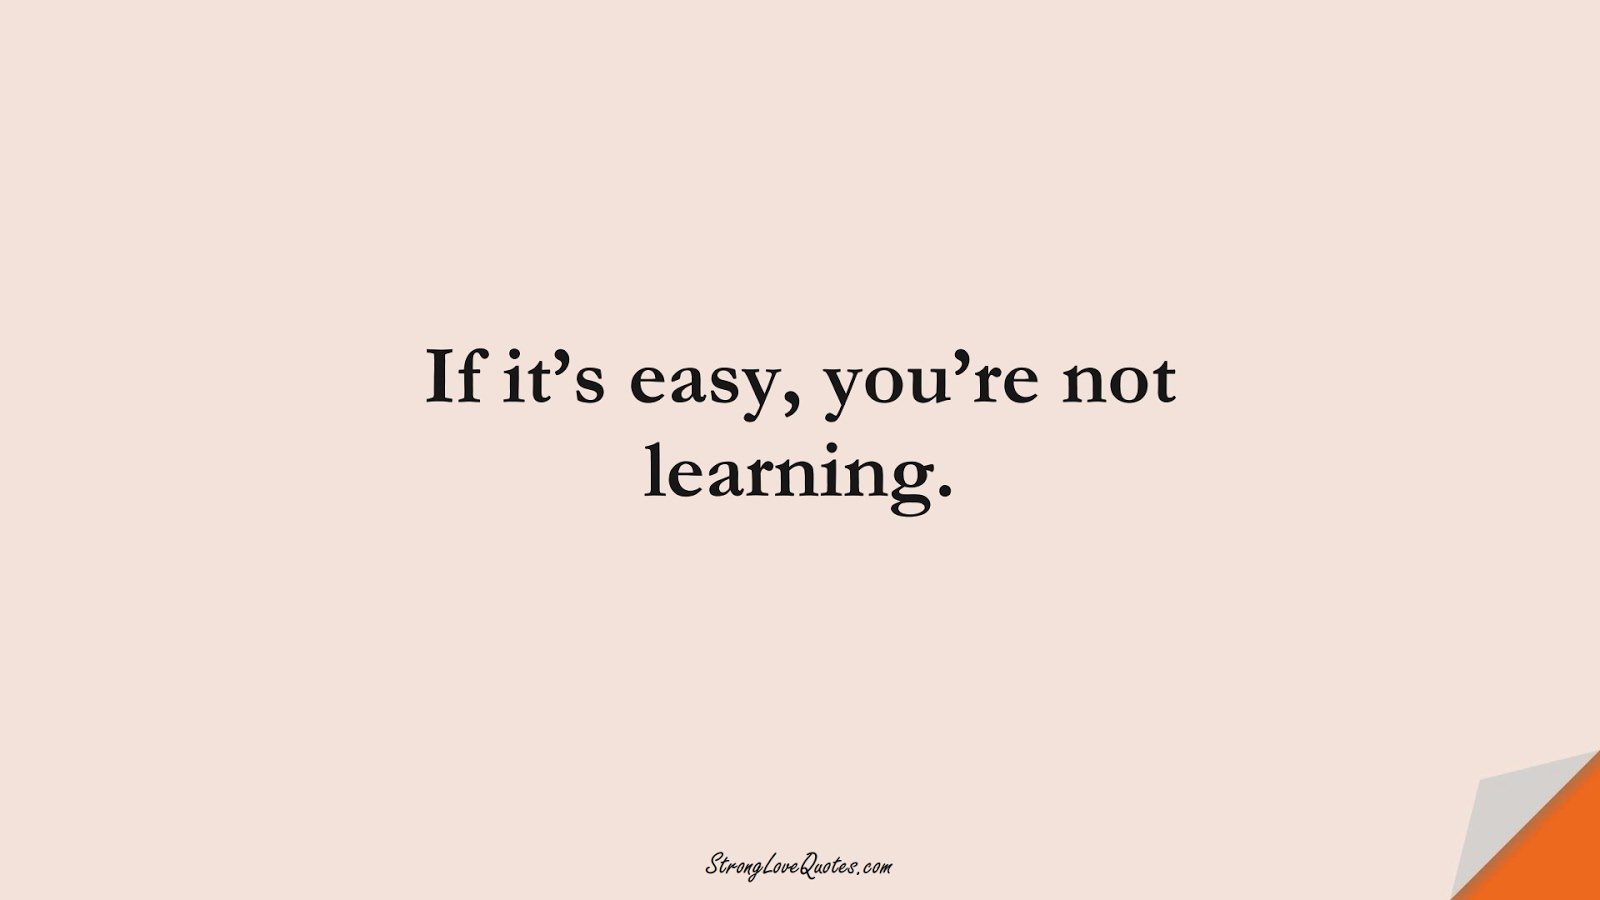 If it's easy, you're not learning.FALSE